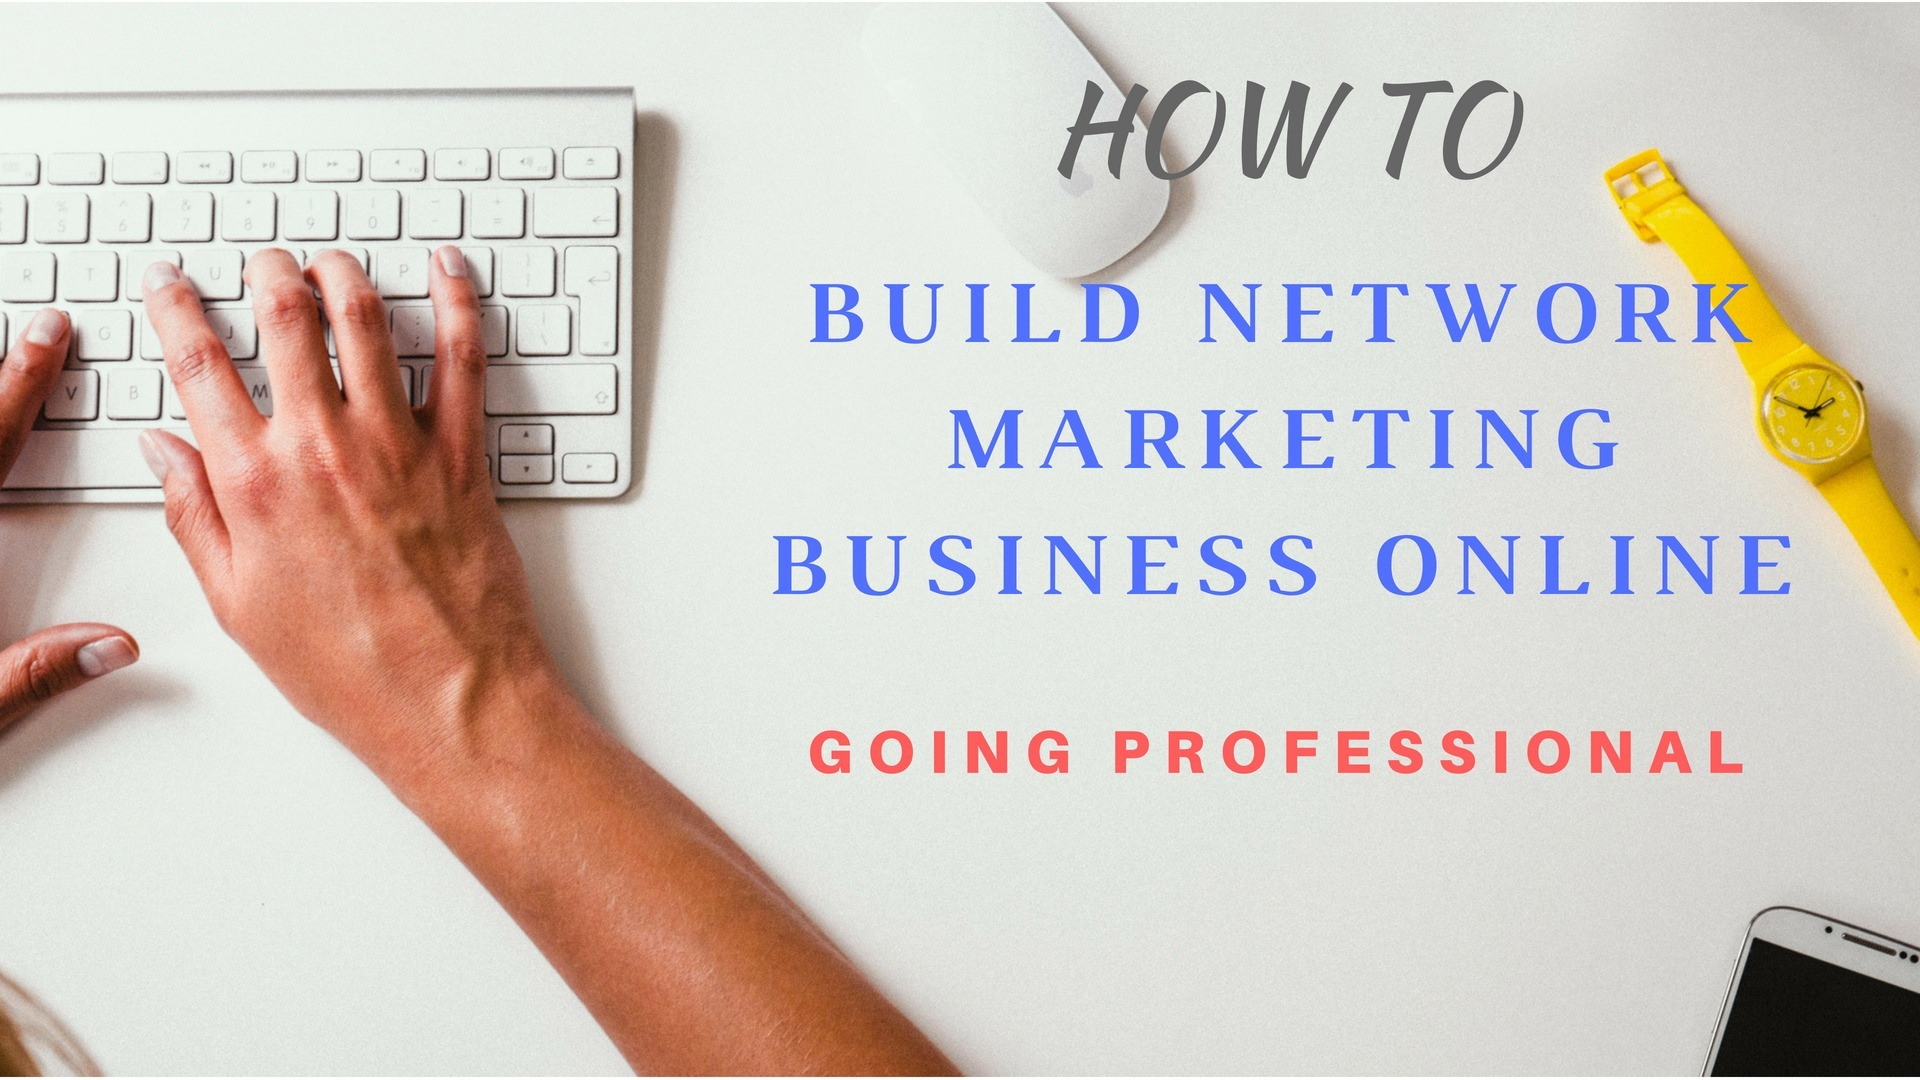 HOW TO Build Network Marketing Business Online – Going Professional